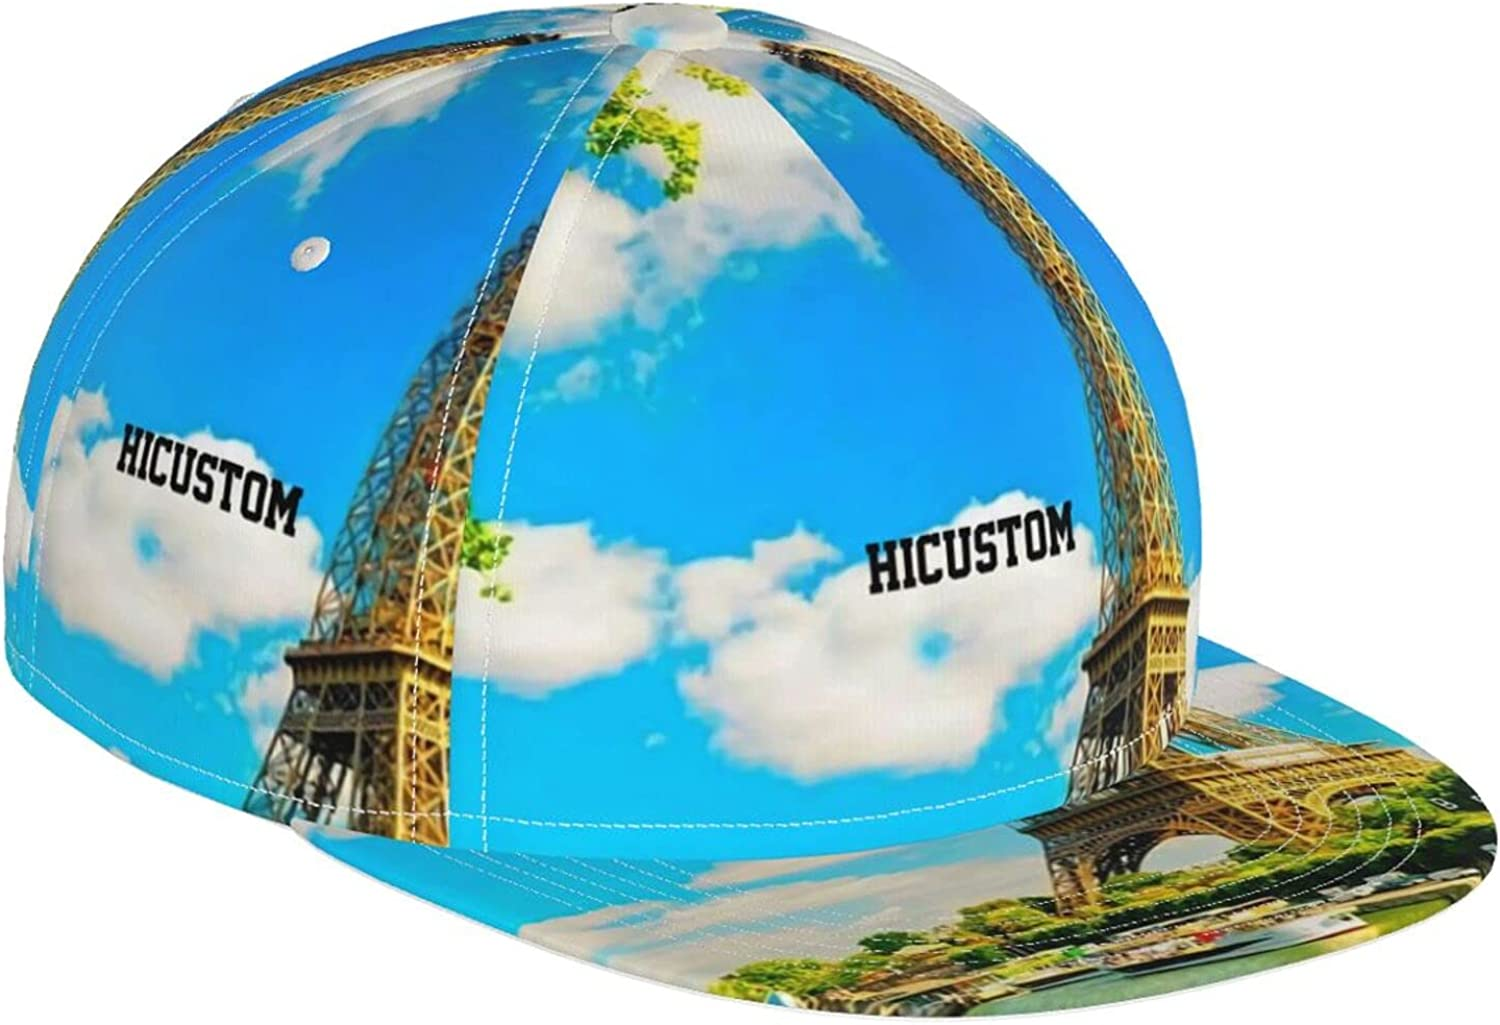 KINESONSS Fantasy Amazing Max 57% OFF Eiffel Tower Cap Baseball Hat Colorful Now on sale